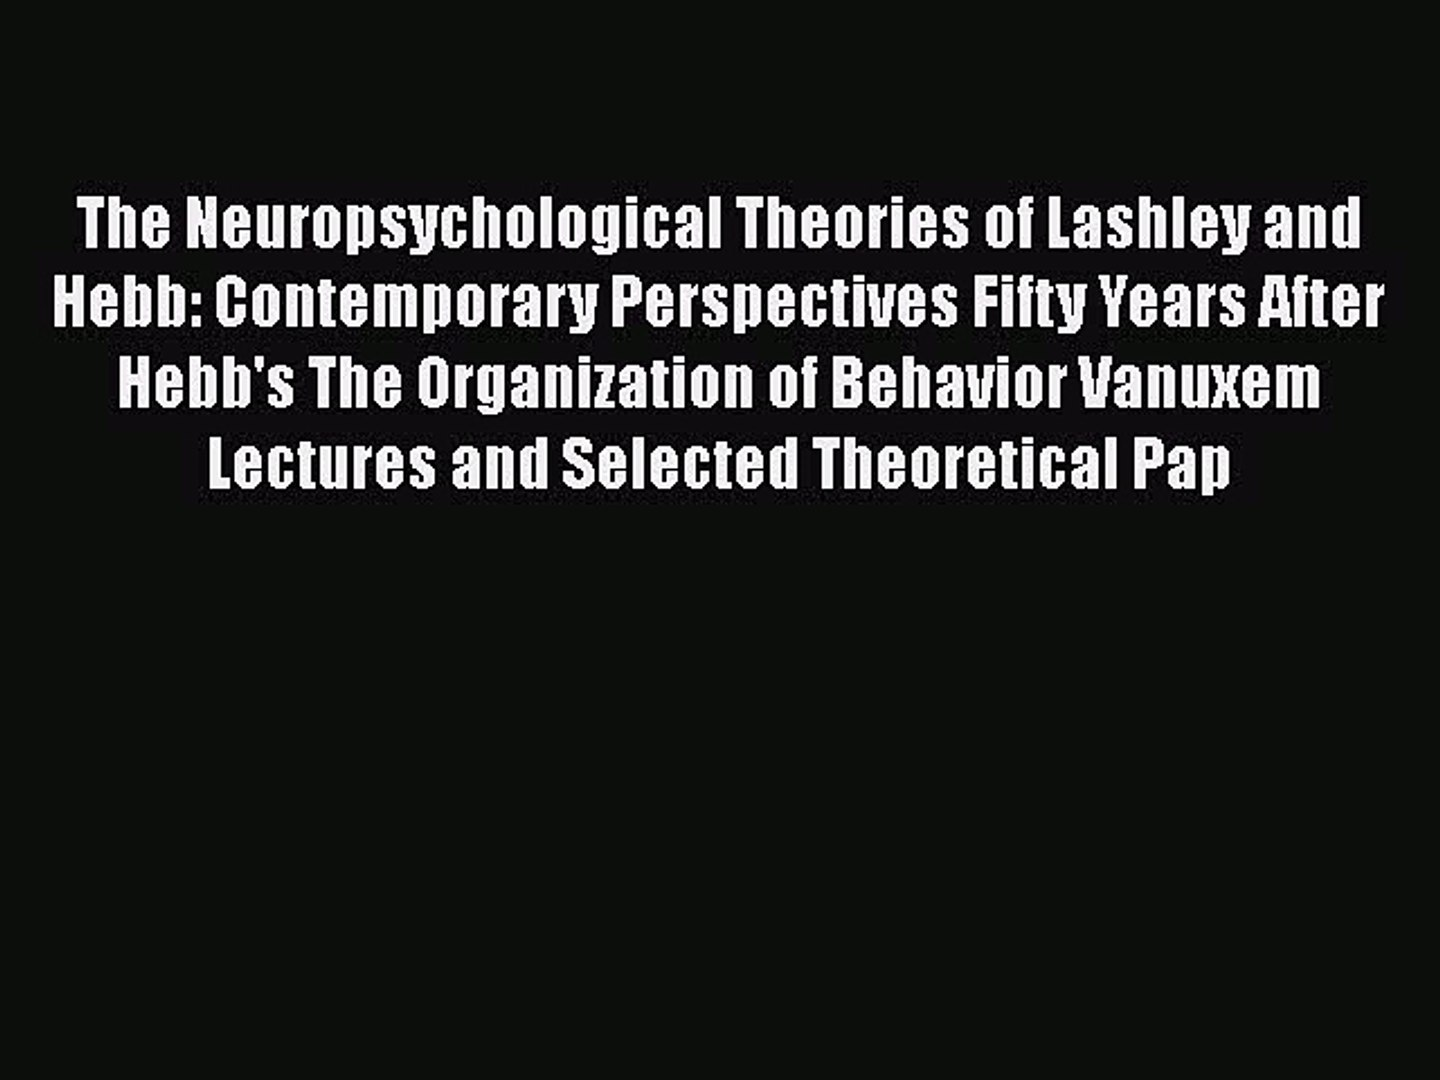 [PDF] The Neuropsychological Theories of Lashley and Hebb: Contemporary Perspectives Fifty